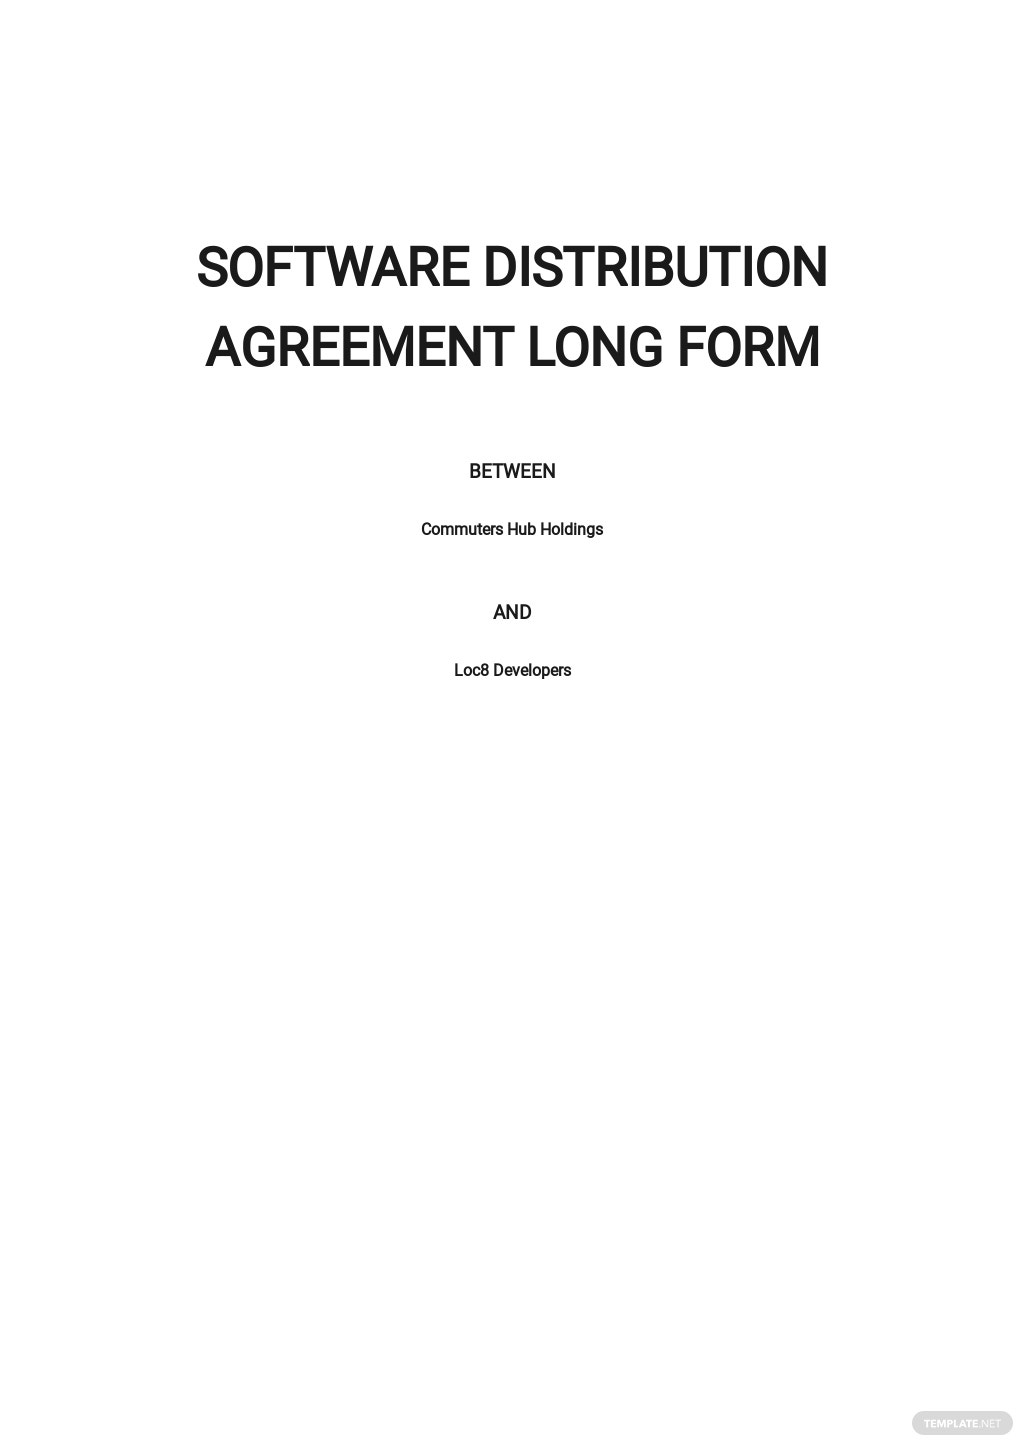 Software Distribution Agreement Long Form Template